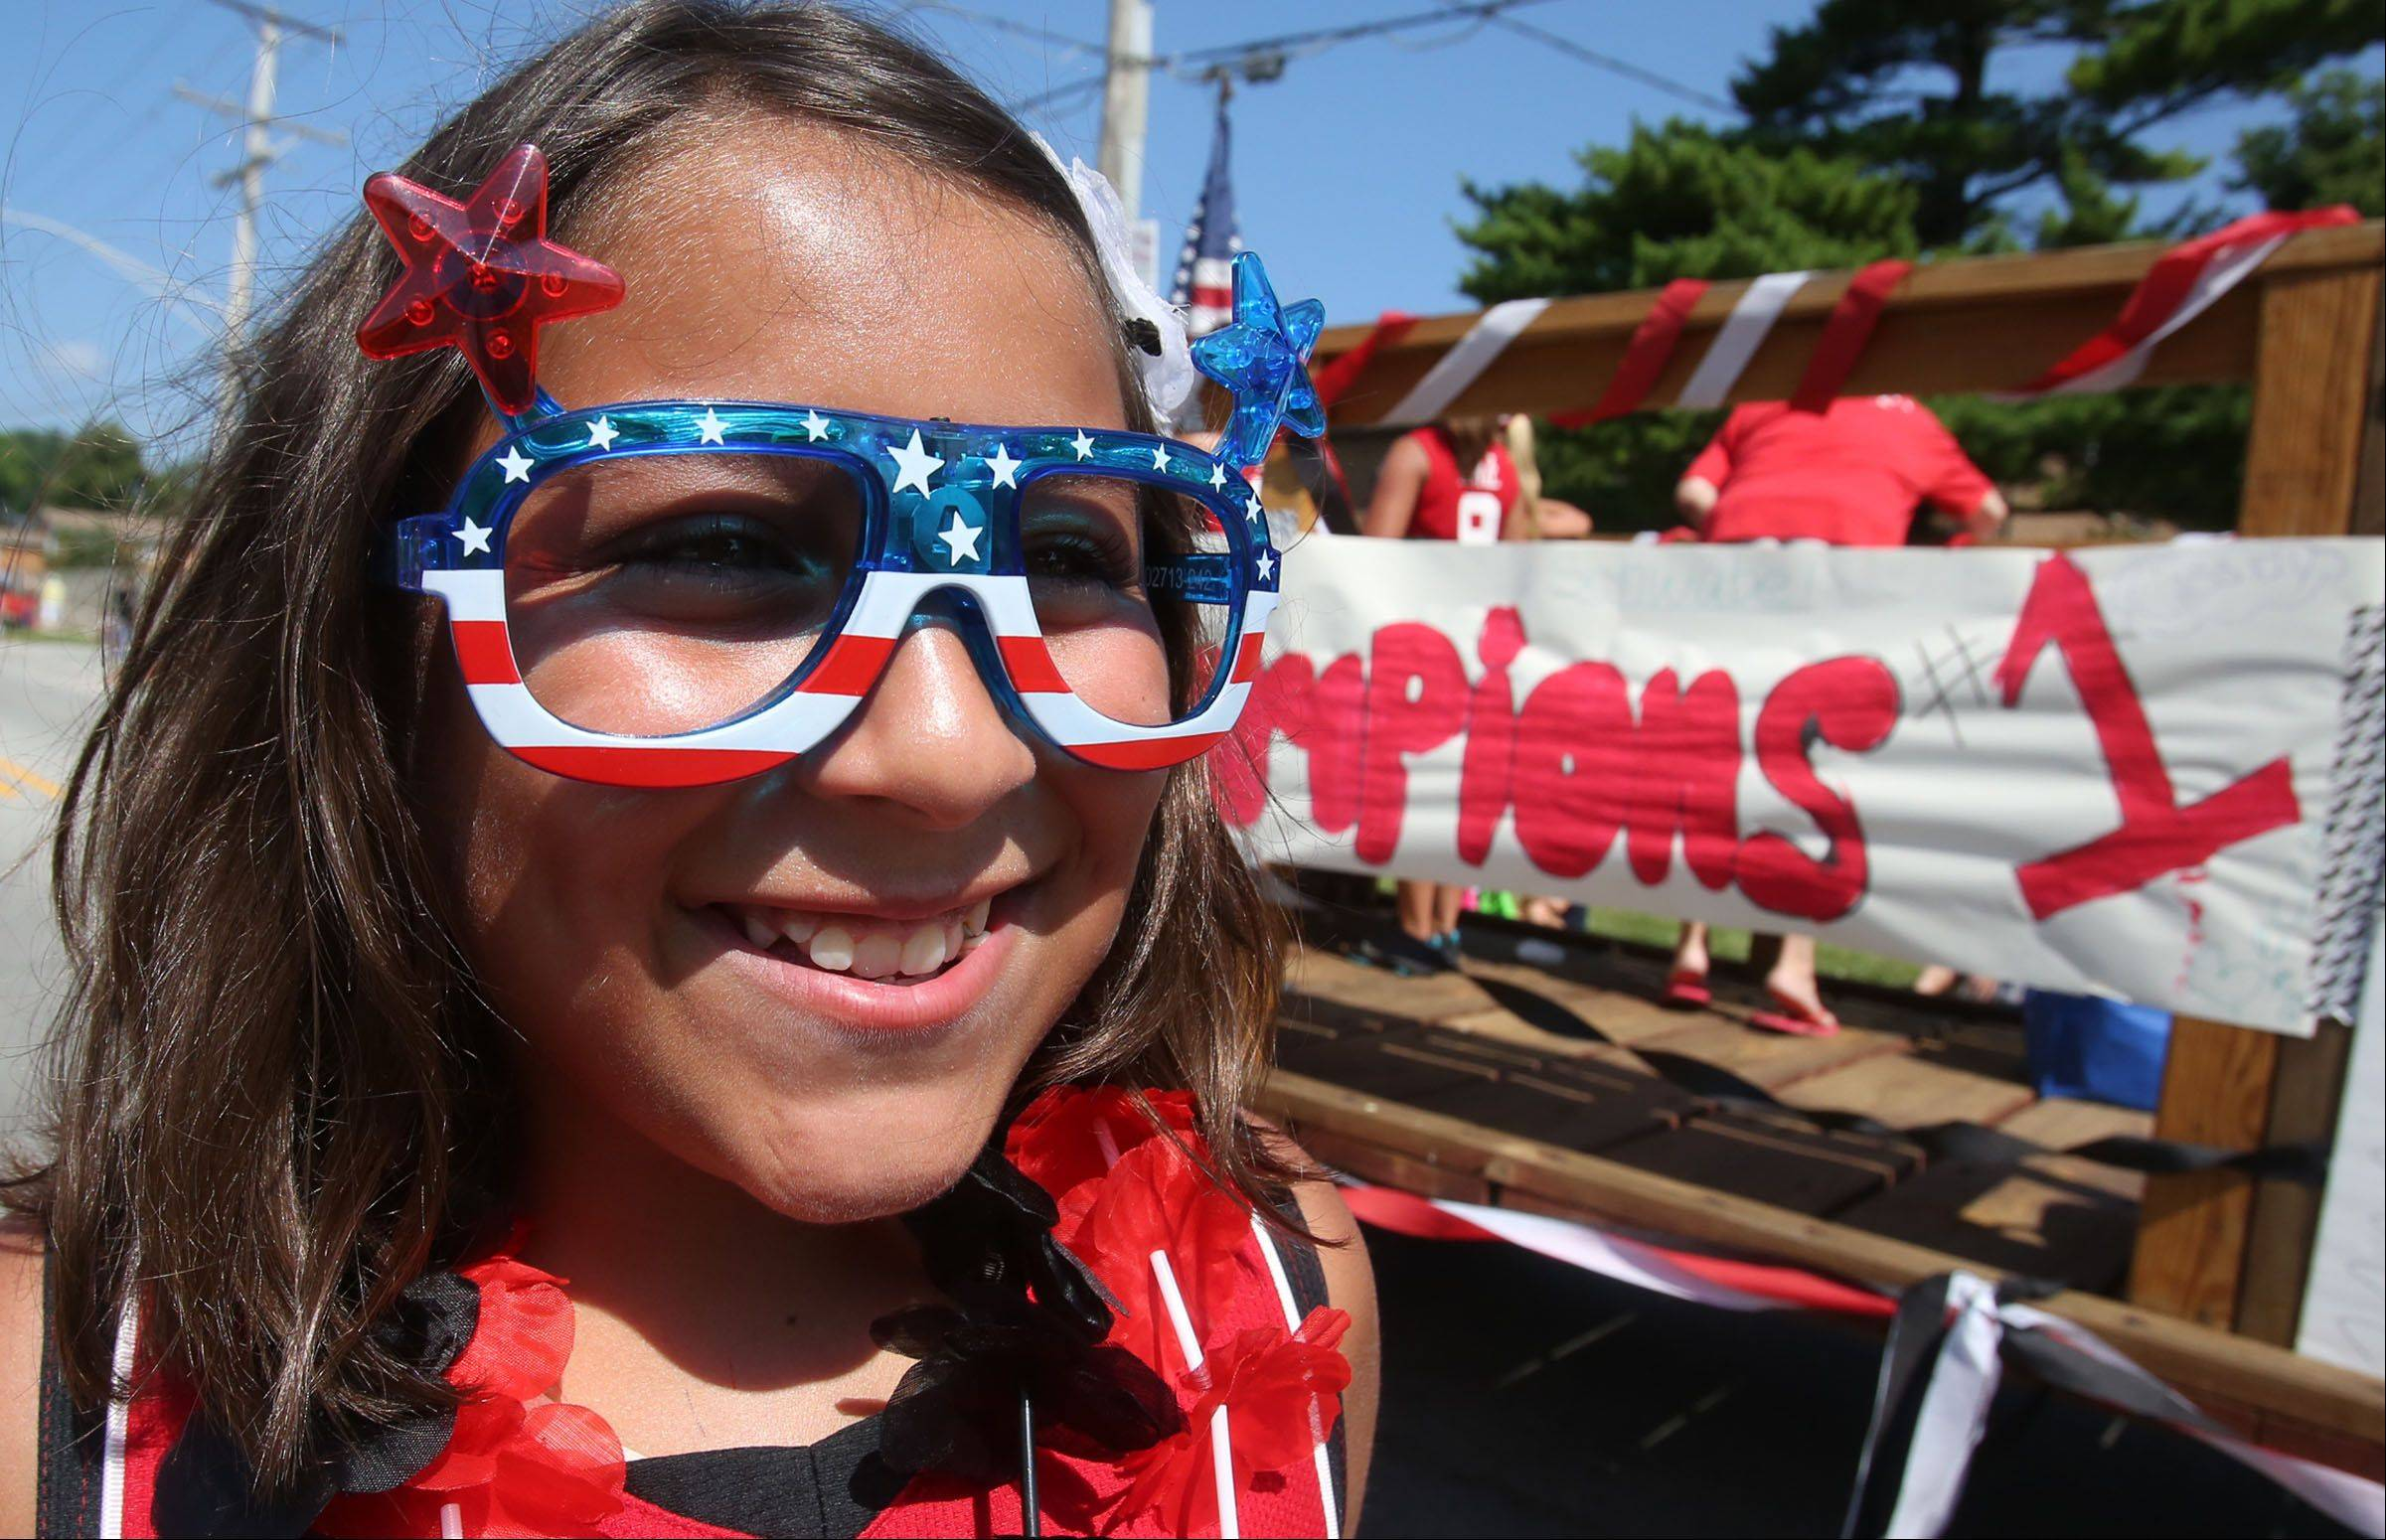 Lilliana Perez, 10, of Fox Lake, runs along side the Grant High School softball float in Saturday's Celebrate Fox Lake parade on Grand Avenue.